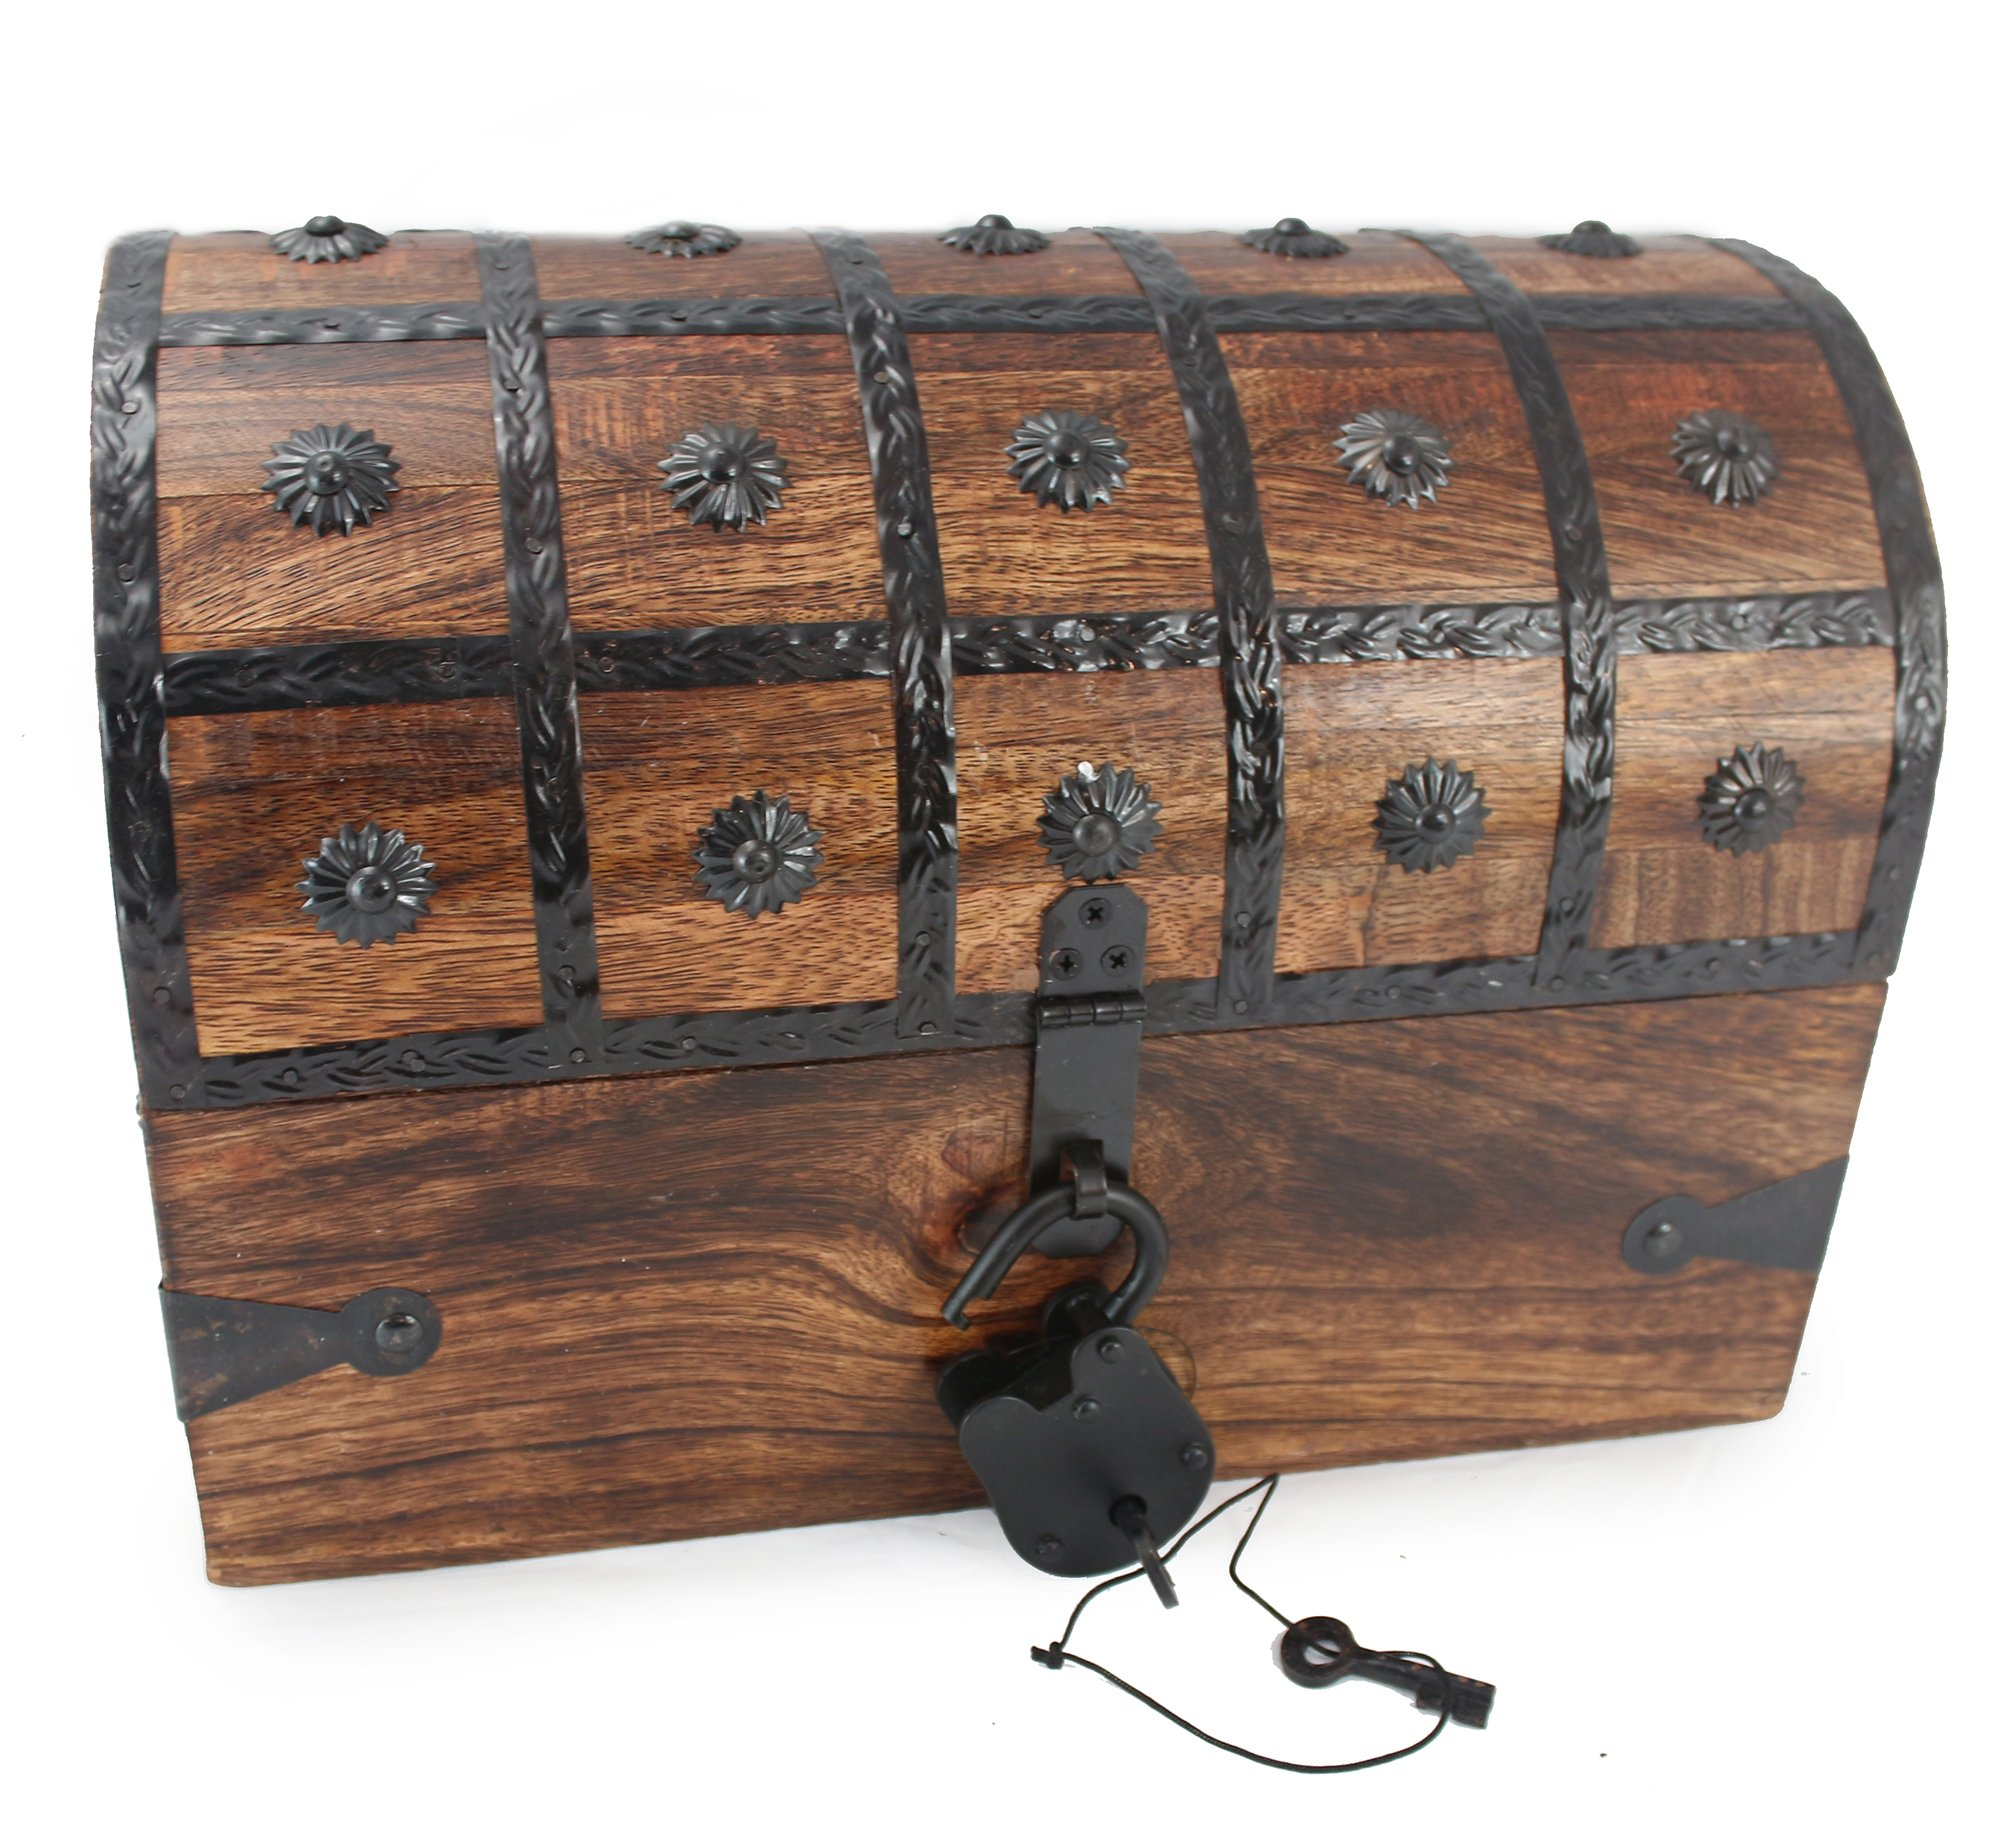 """Well Pack Box Wooden Pirate Treasure Chest Box 14"""" x 9"""" x 8"""" Calico Jack Model Authentic Antique Style Wooden Pirate Treasure Chest Box With Black Hasp Latch Includes Master Padlock & Vintage Skeleto"""